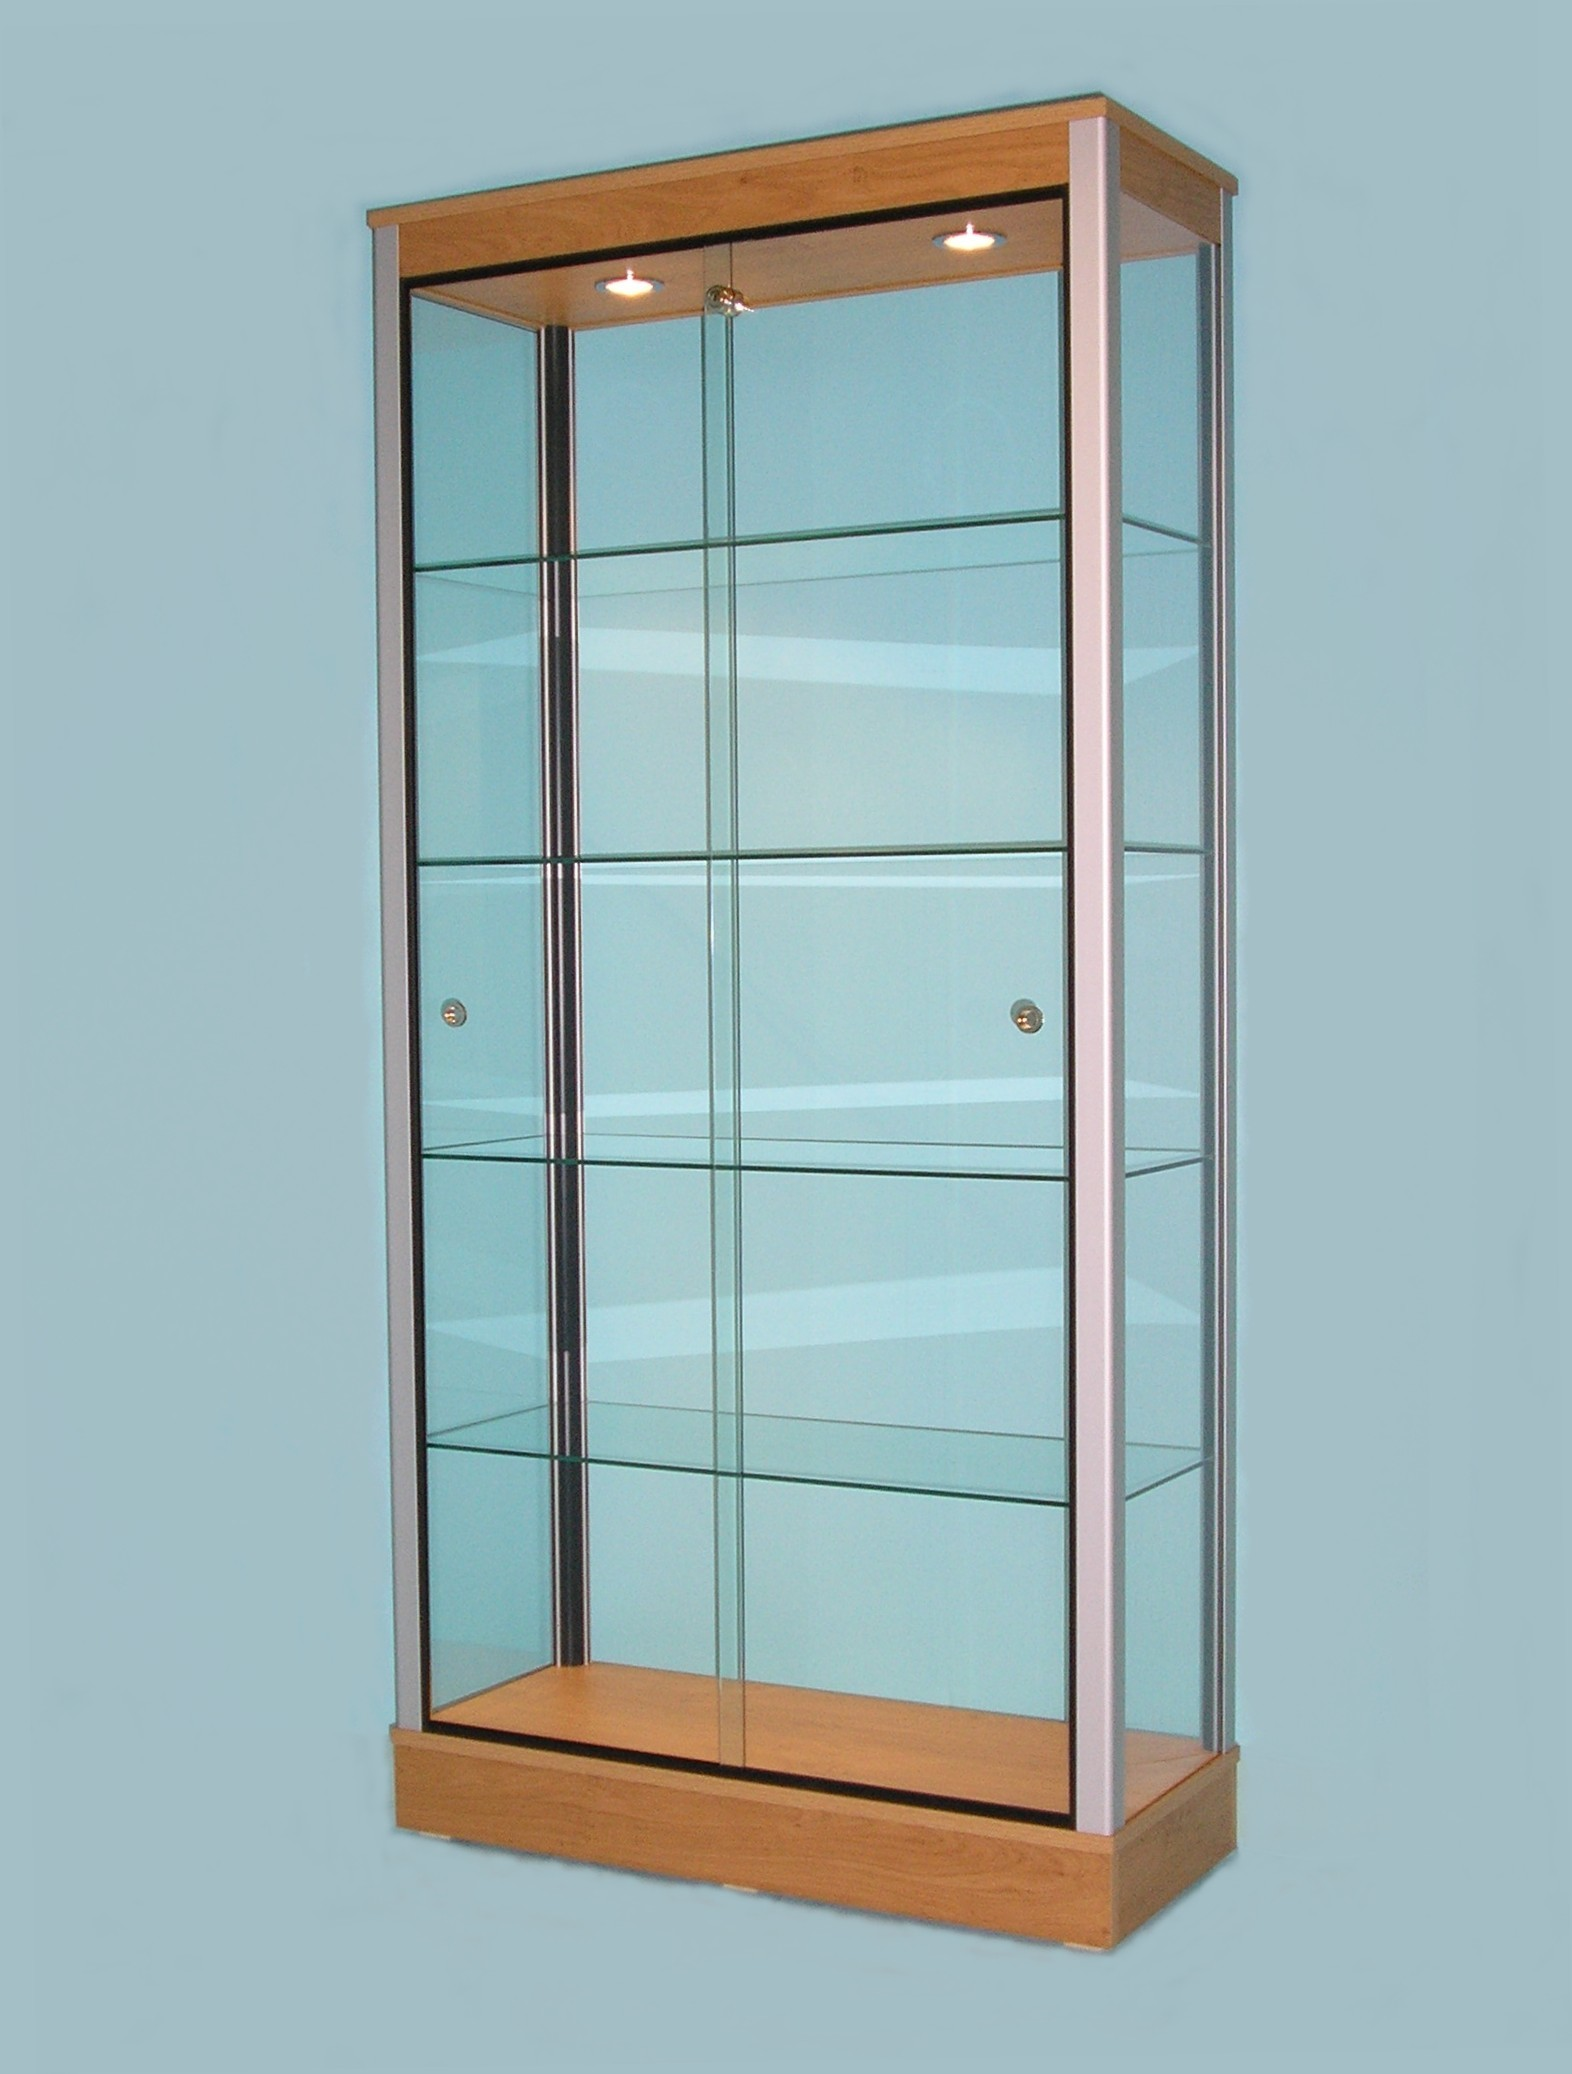 ikea detolf glass cabinet review